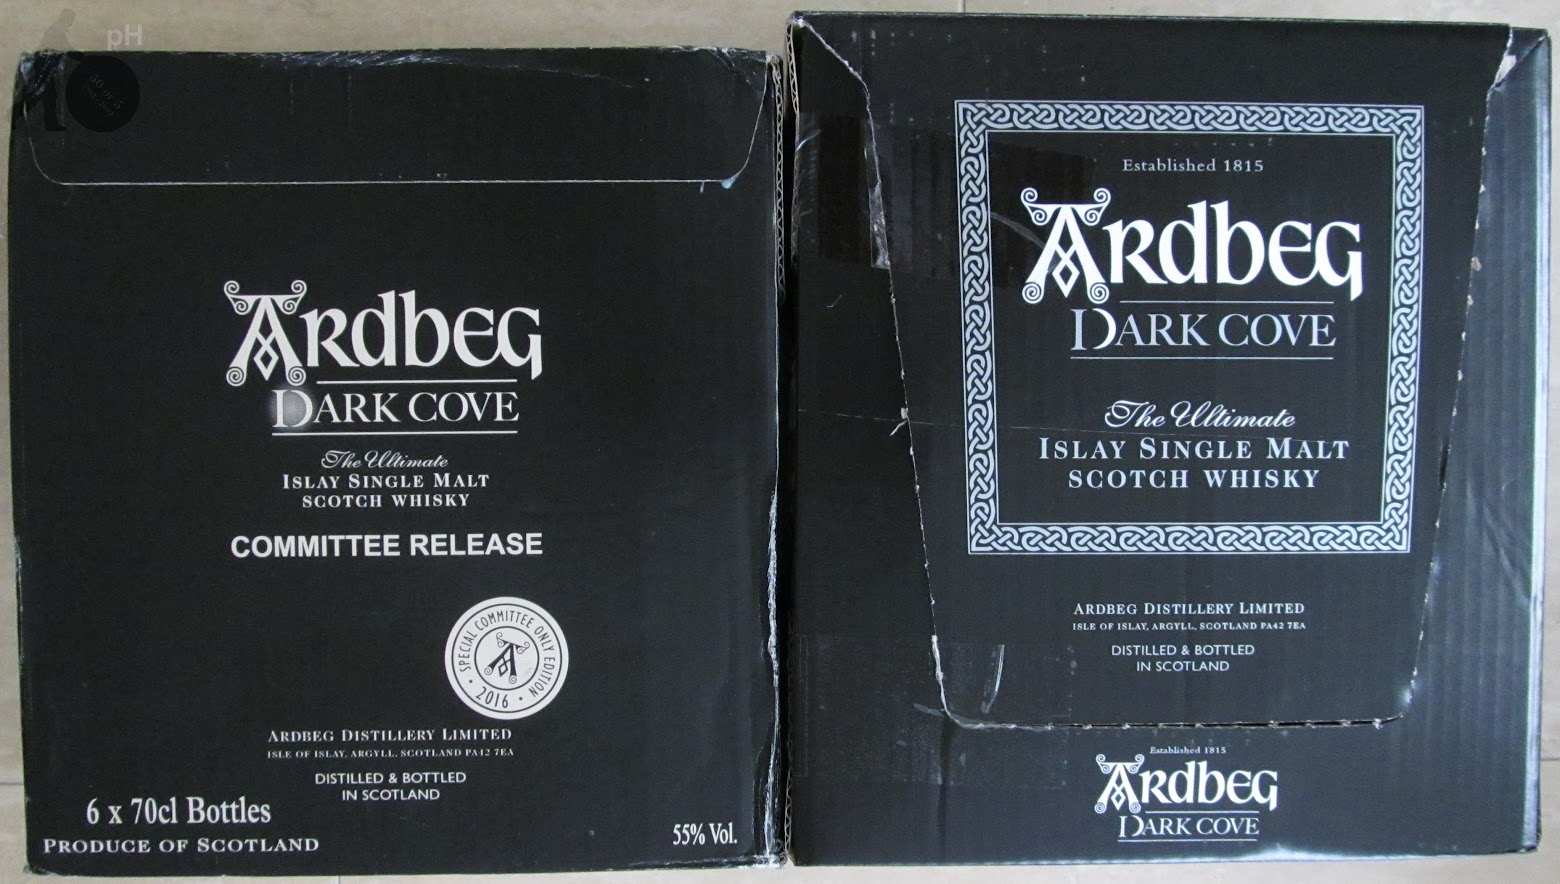 Ardbeg Dark Cove cartons